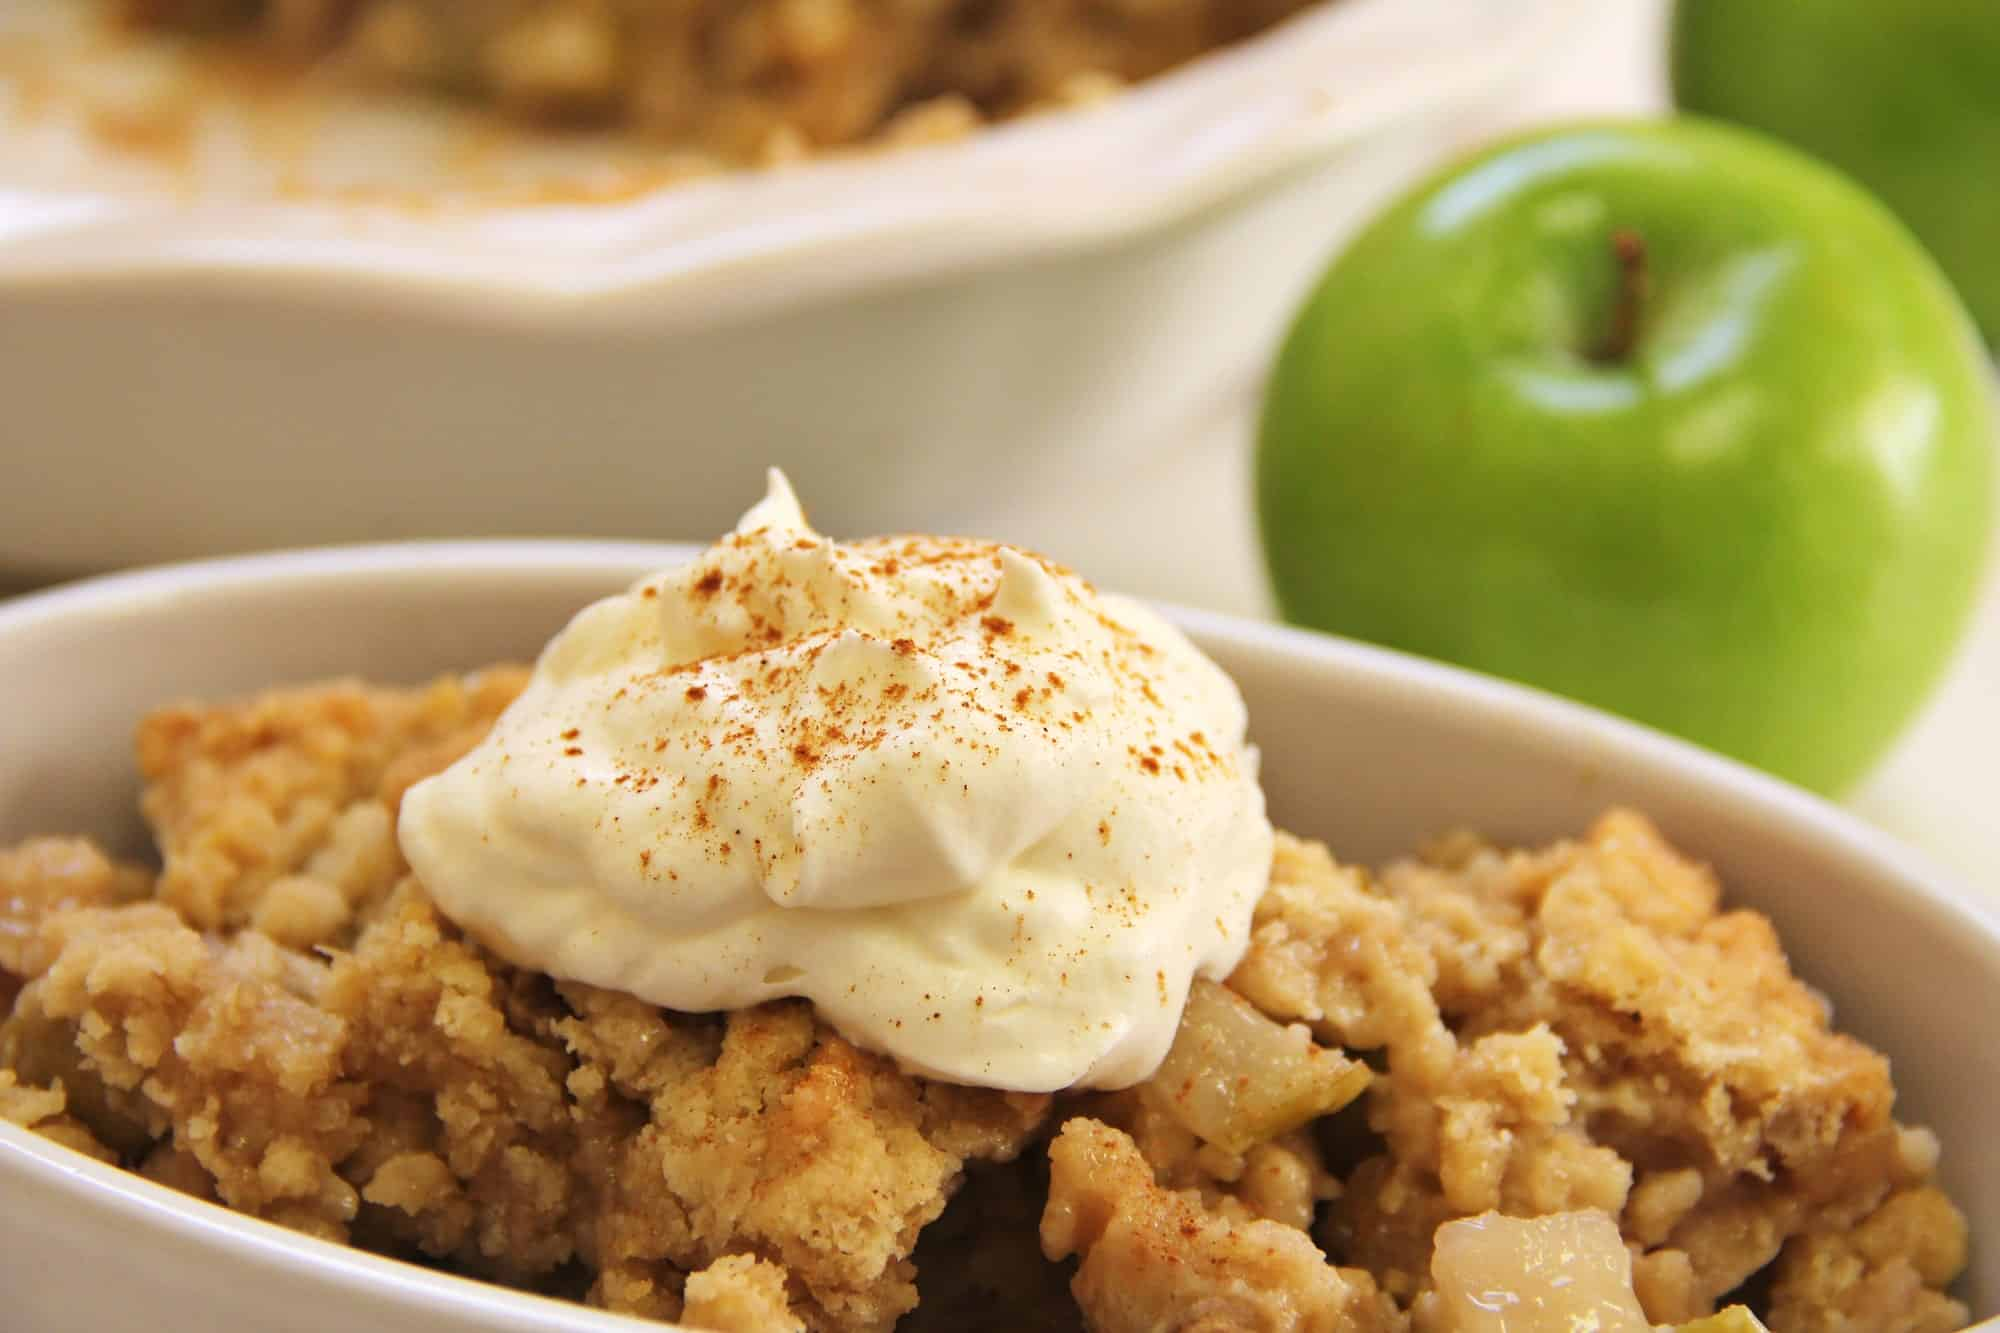 A bowl with fruit crisp and a dollop of whipped cream